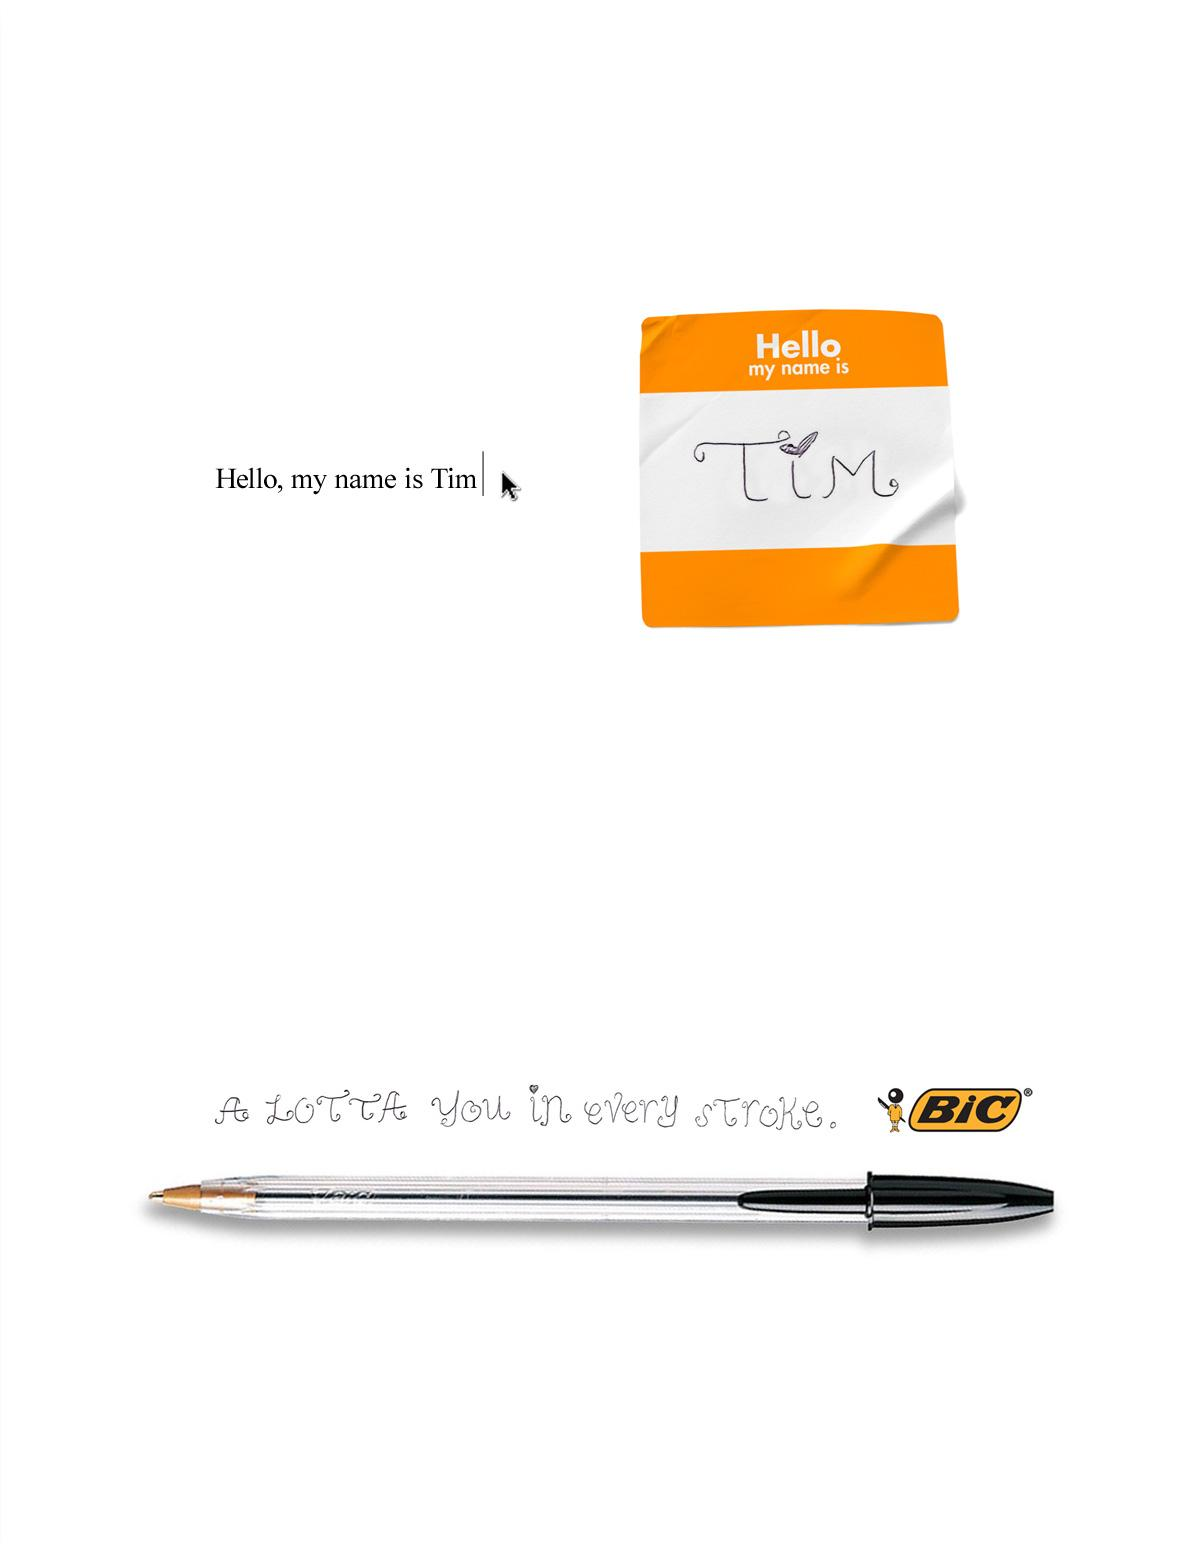 BIC Print Ad -  Hello, my name is Tim